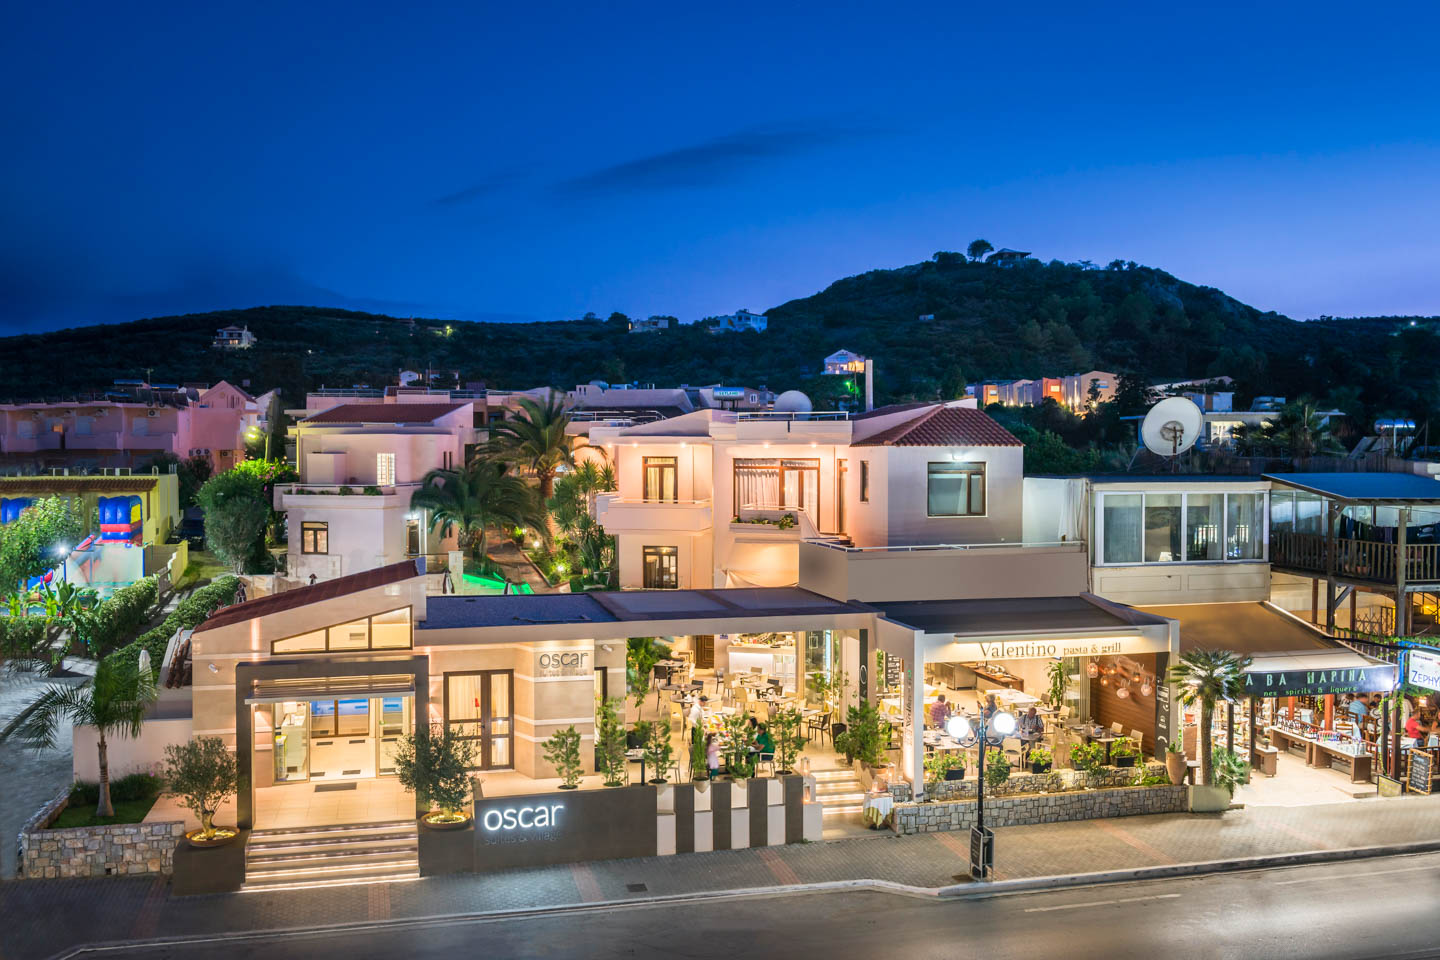 Night at the exterior of Oscar Suites & Village hotel in Platanias, Chania, Crete.